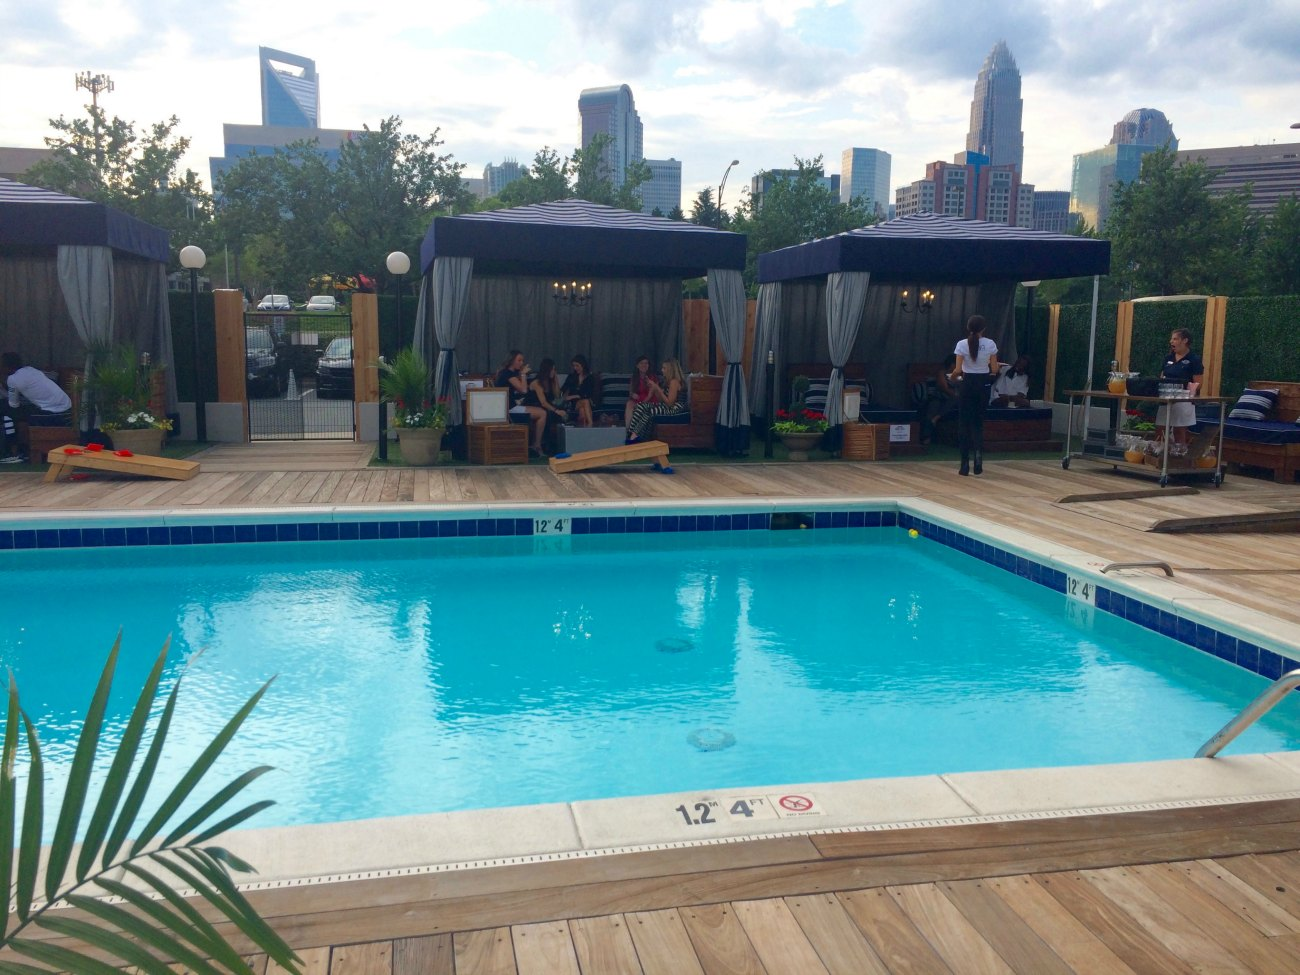 FIRST LOOK: Poolside cabanas and popsicle cocktails at Craft City Social Club and City Lights Rooftop